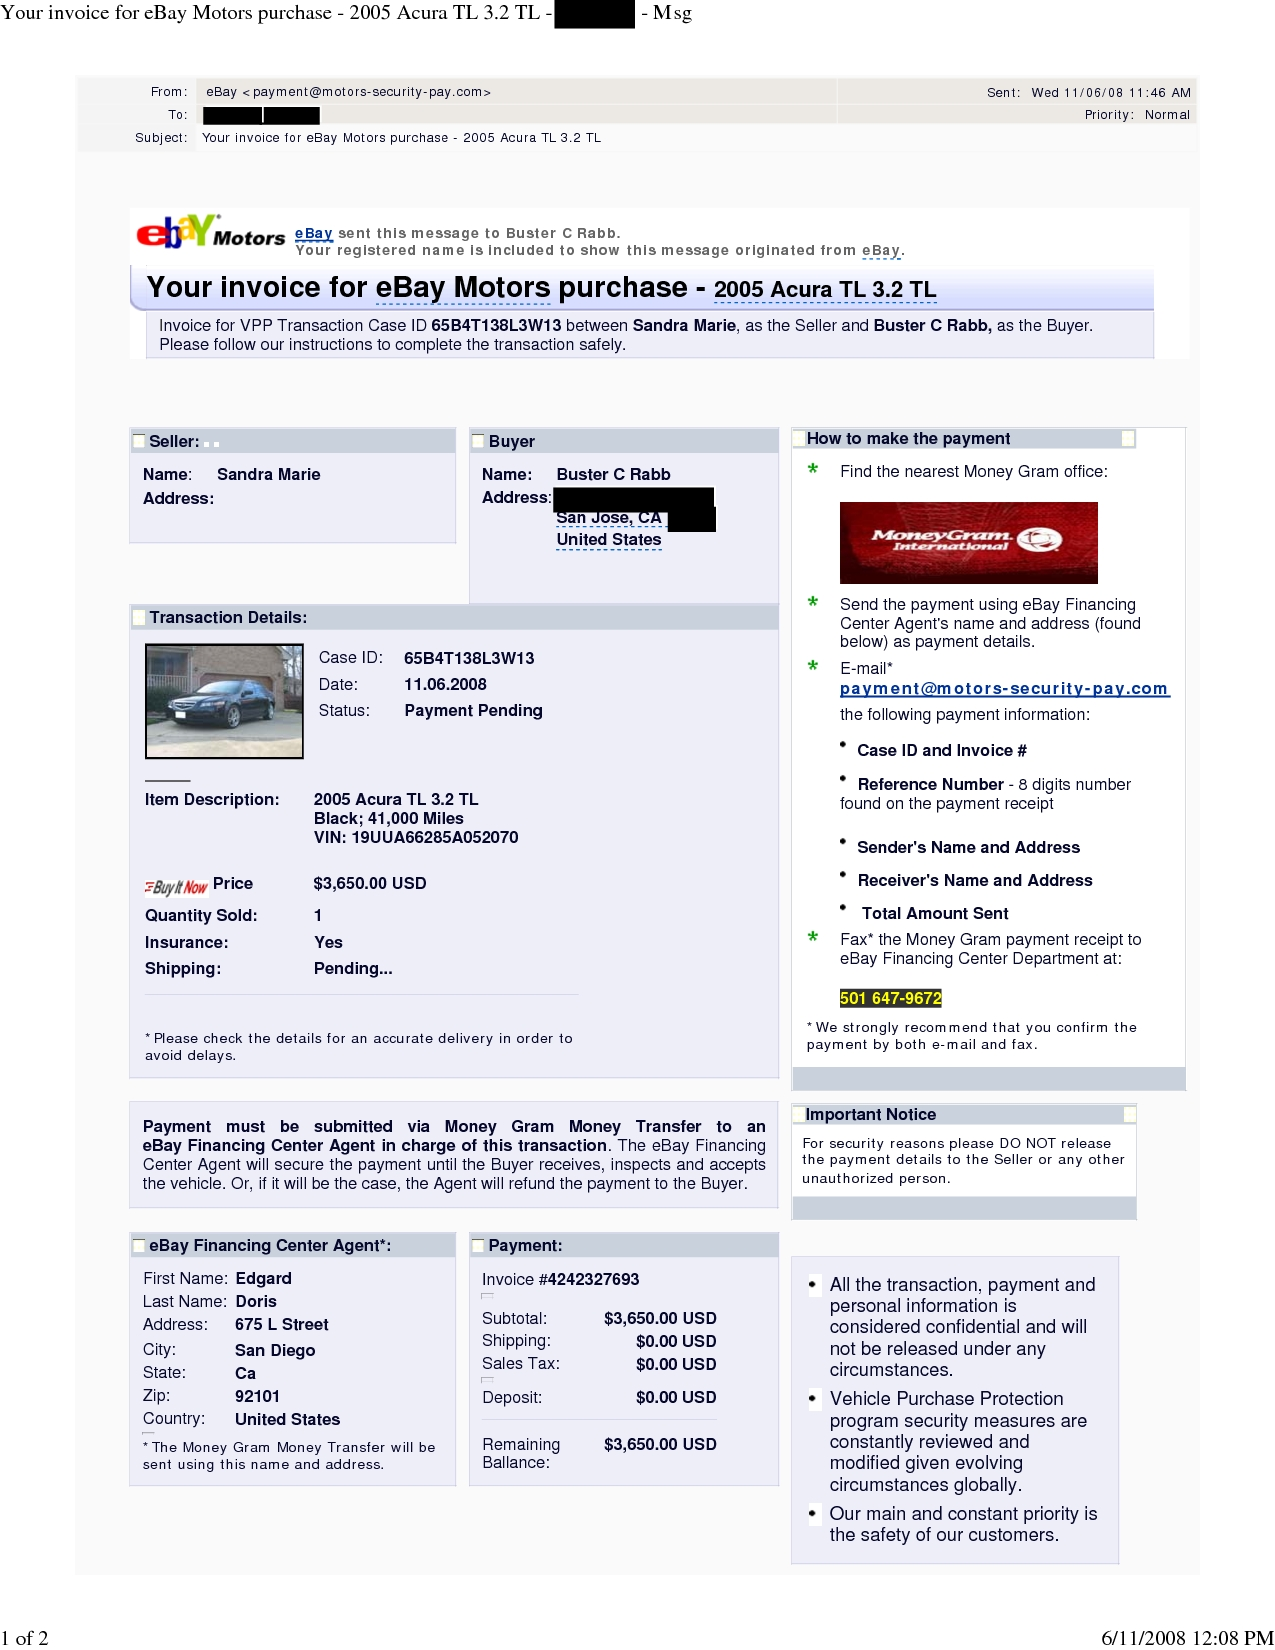 how to create ebay invoice